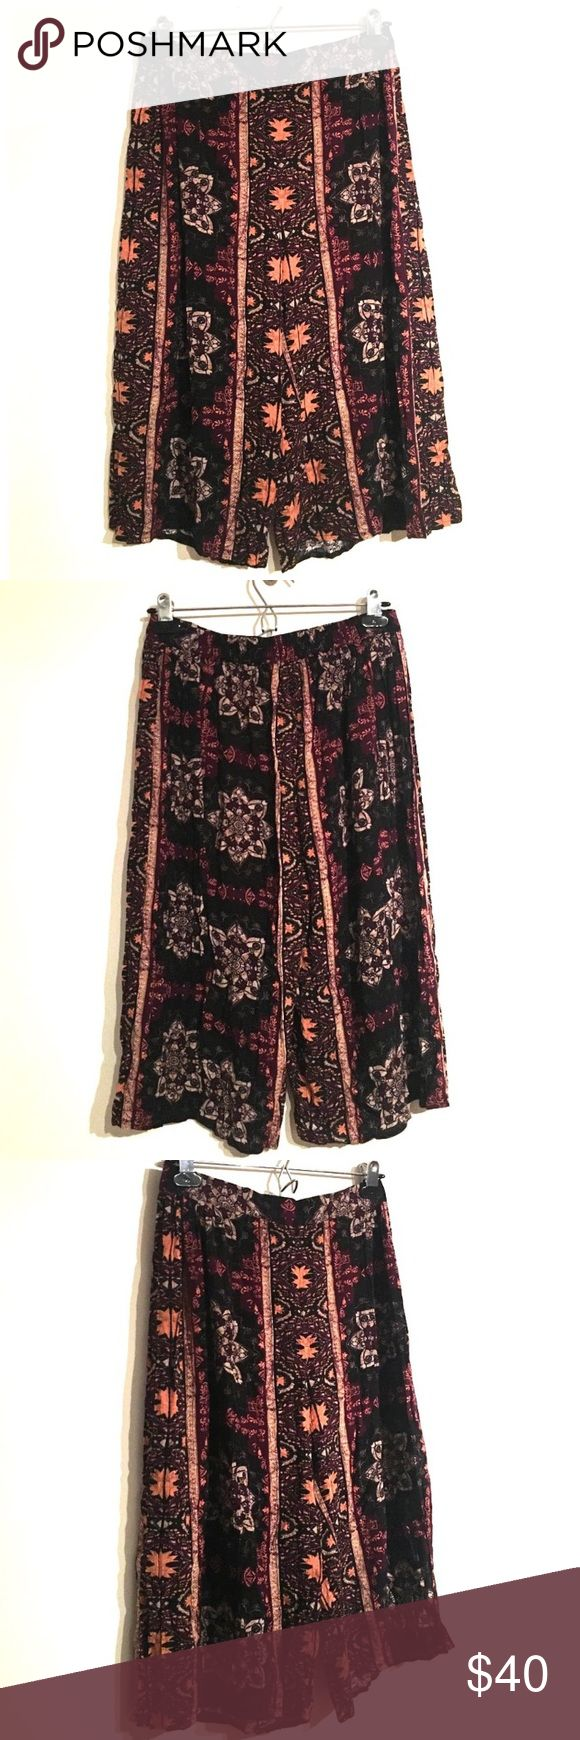 Kendall & Kylie motif printed culotte Capri shorts Very lightweight culotte Capri shorts by Kendall & Kylie. Size medium, brand new with tags, perfect condition and absolutely adorable! Kendall & Kylie Shorts